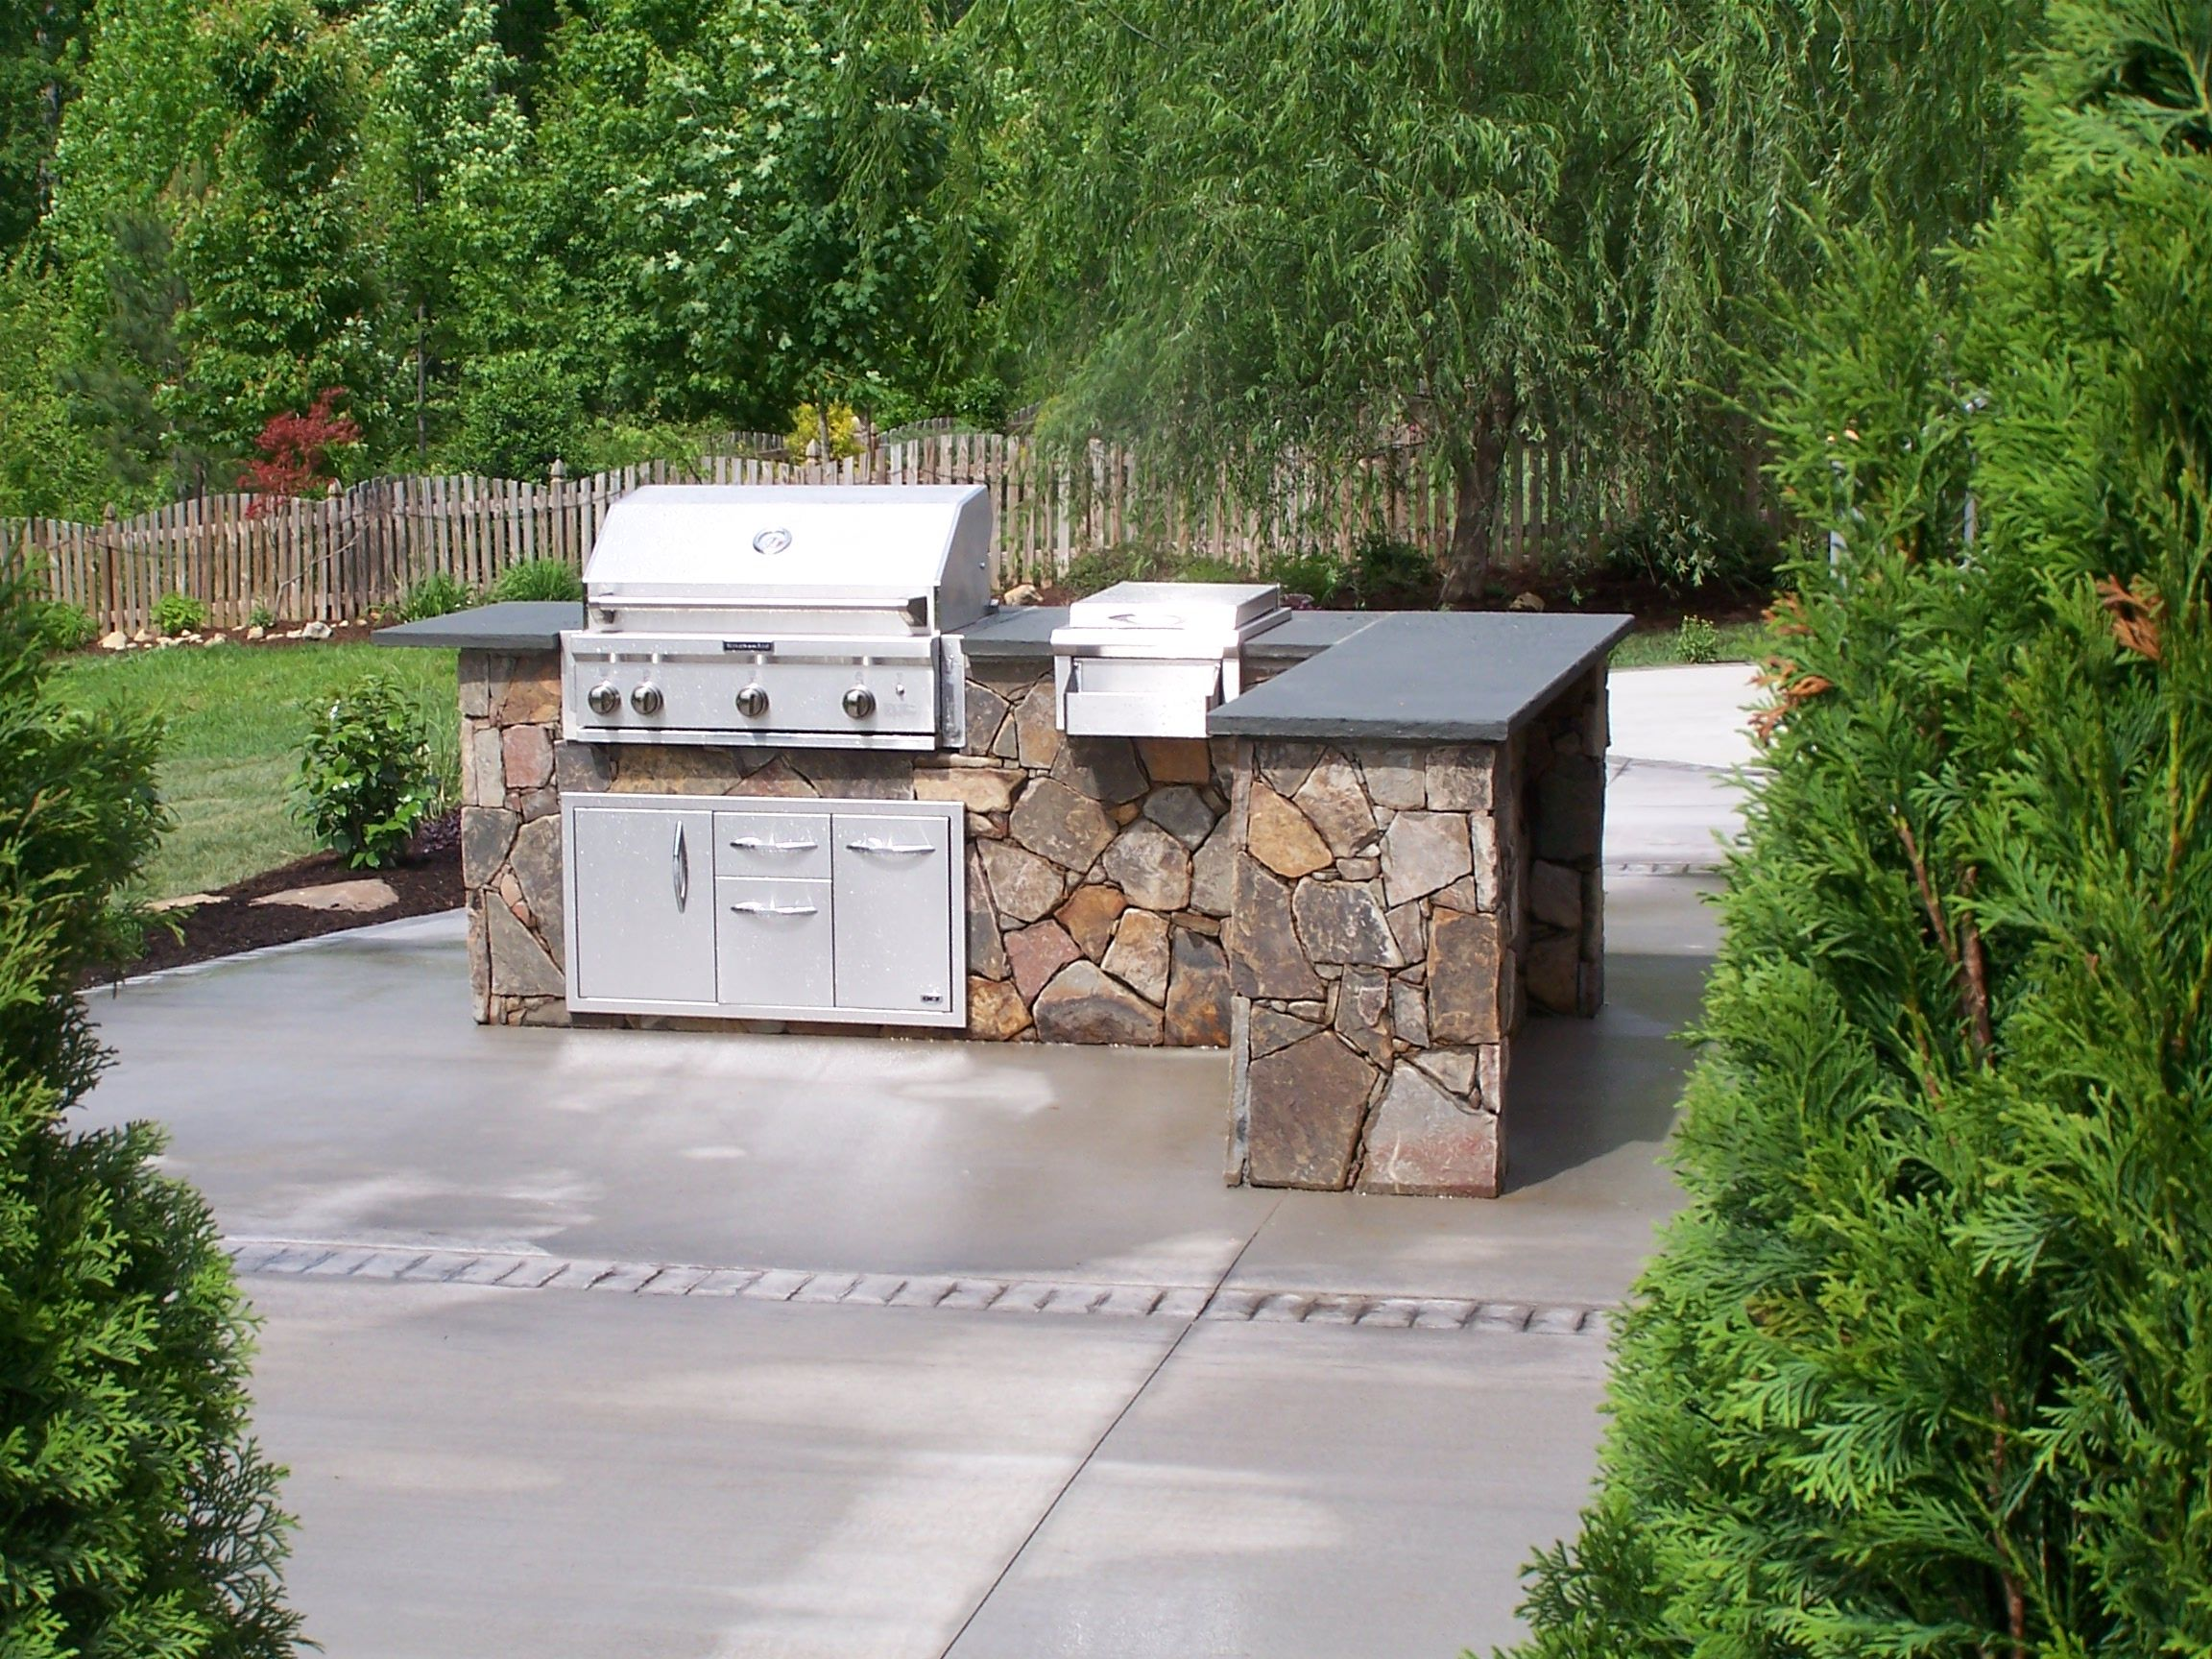 Attirant Outdoor Grill Designs | Outdoor Kitchens U2013 This Ainu0027t My Dadu0027s Backyard  Grill!